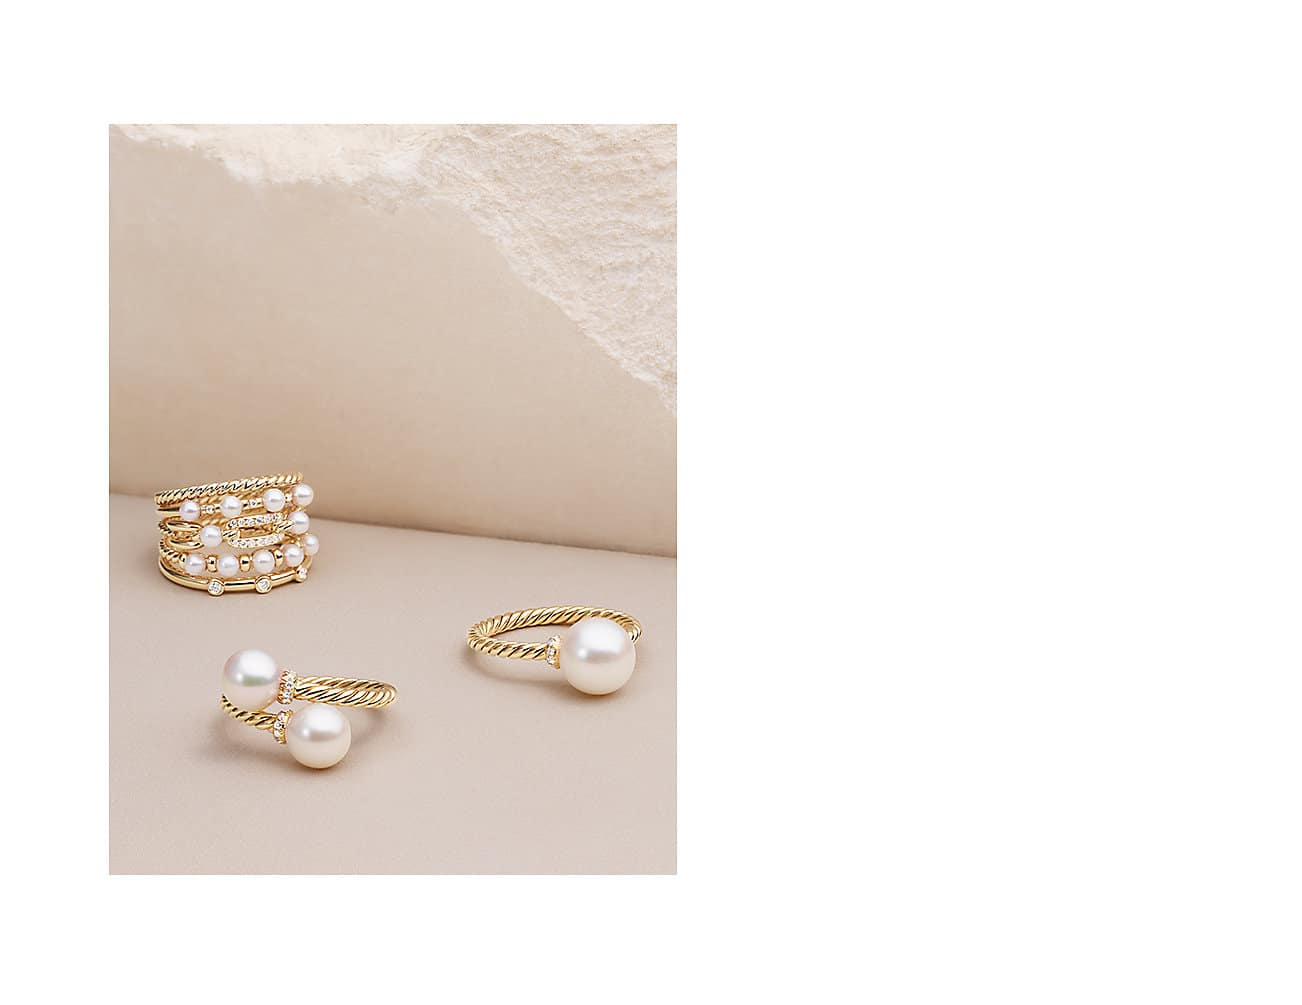 Petite Perle and Solari rings in 18K yellow gold with cultured freshwater pearls and diamonds.